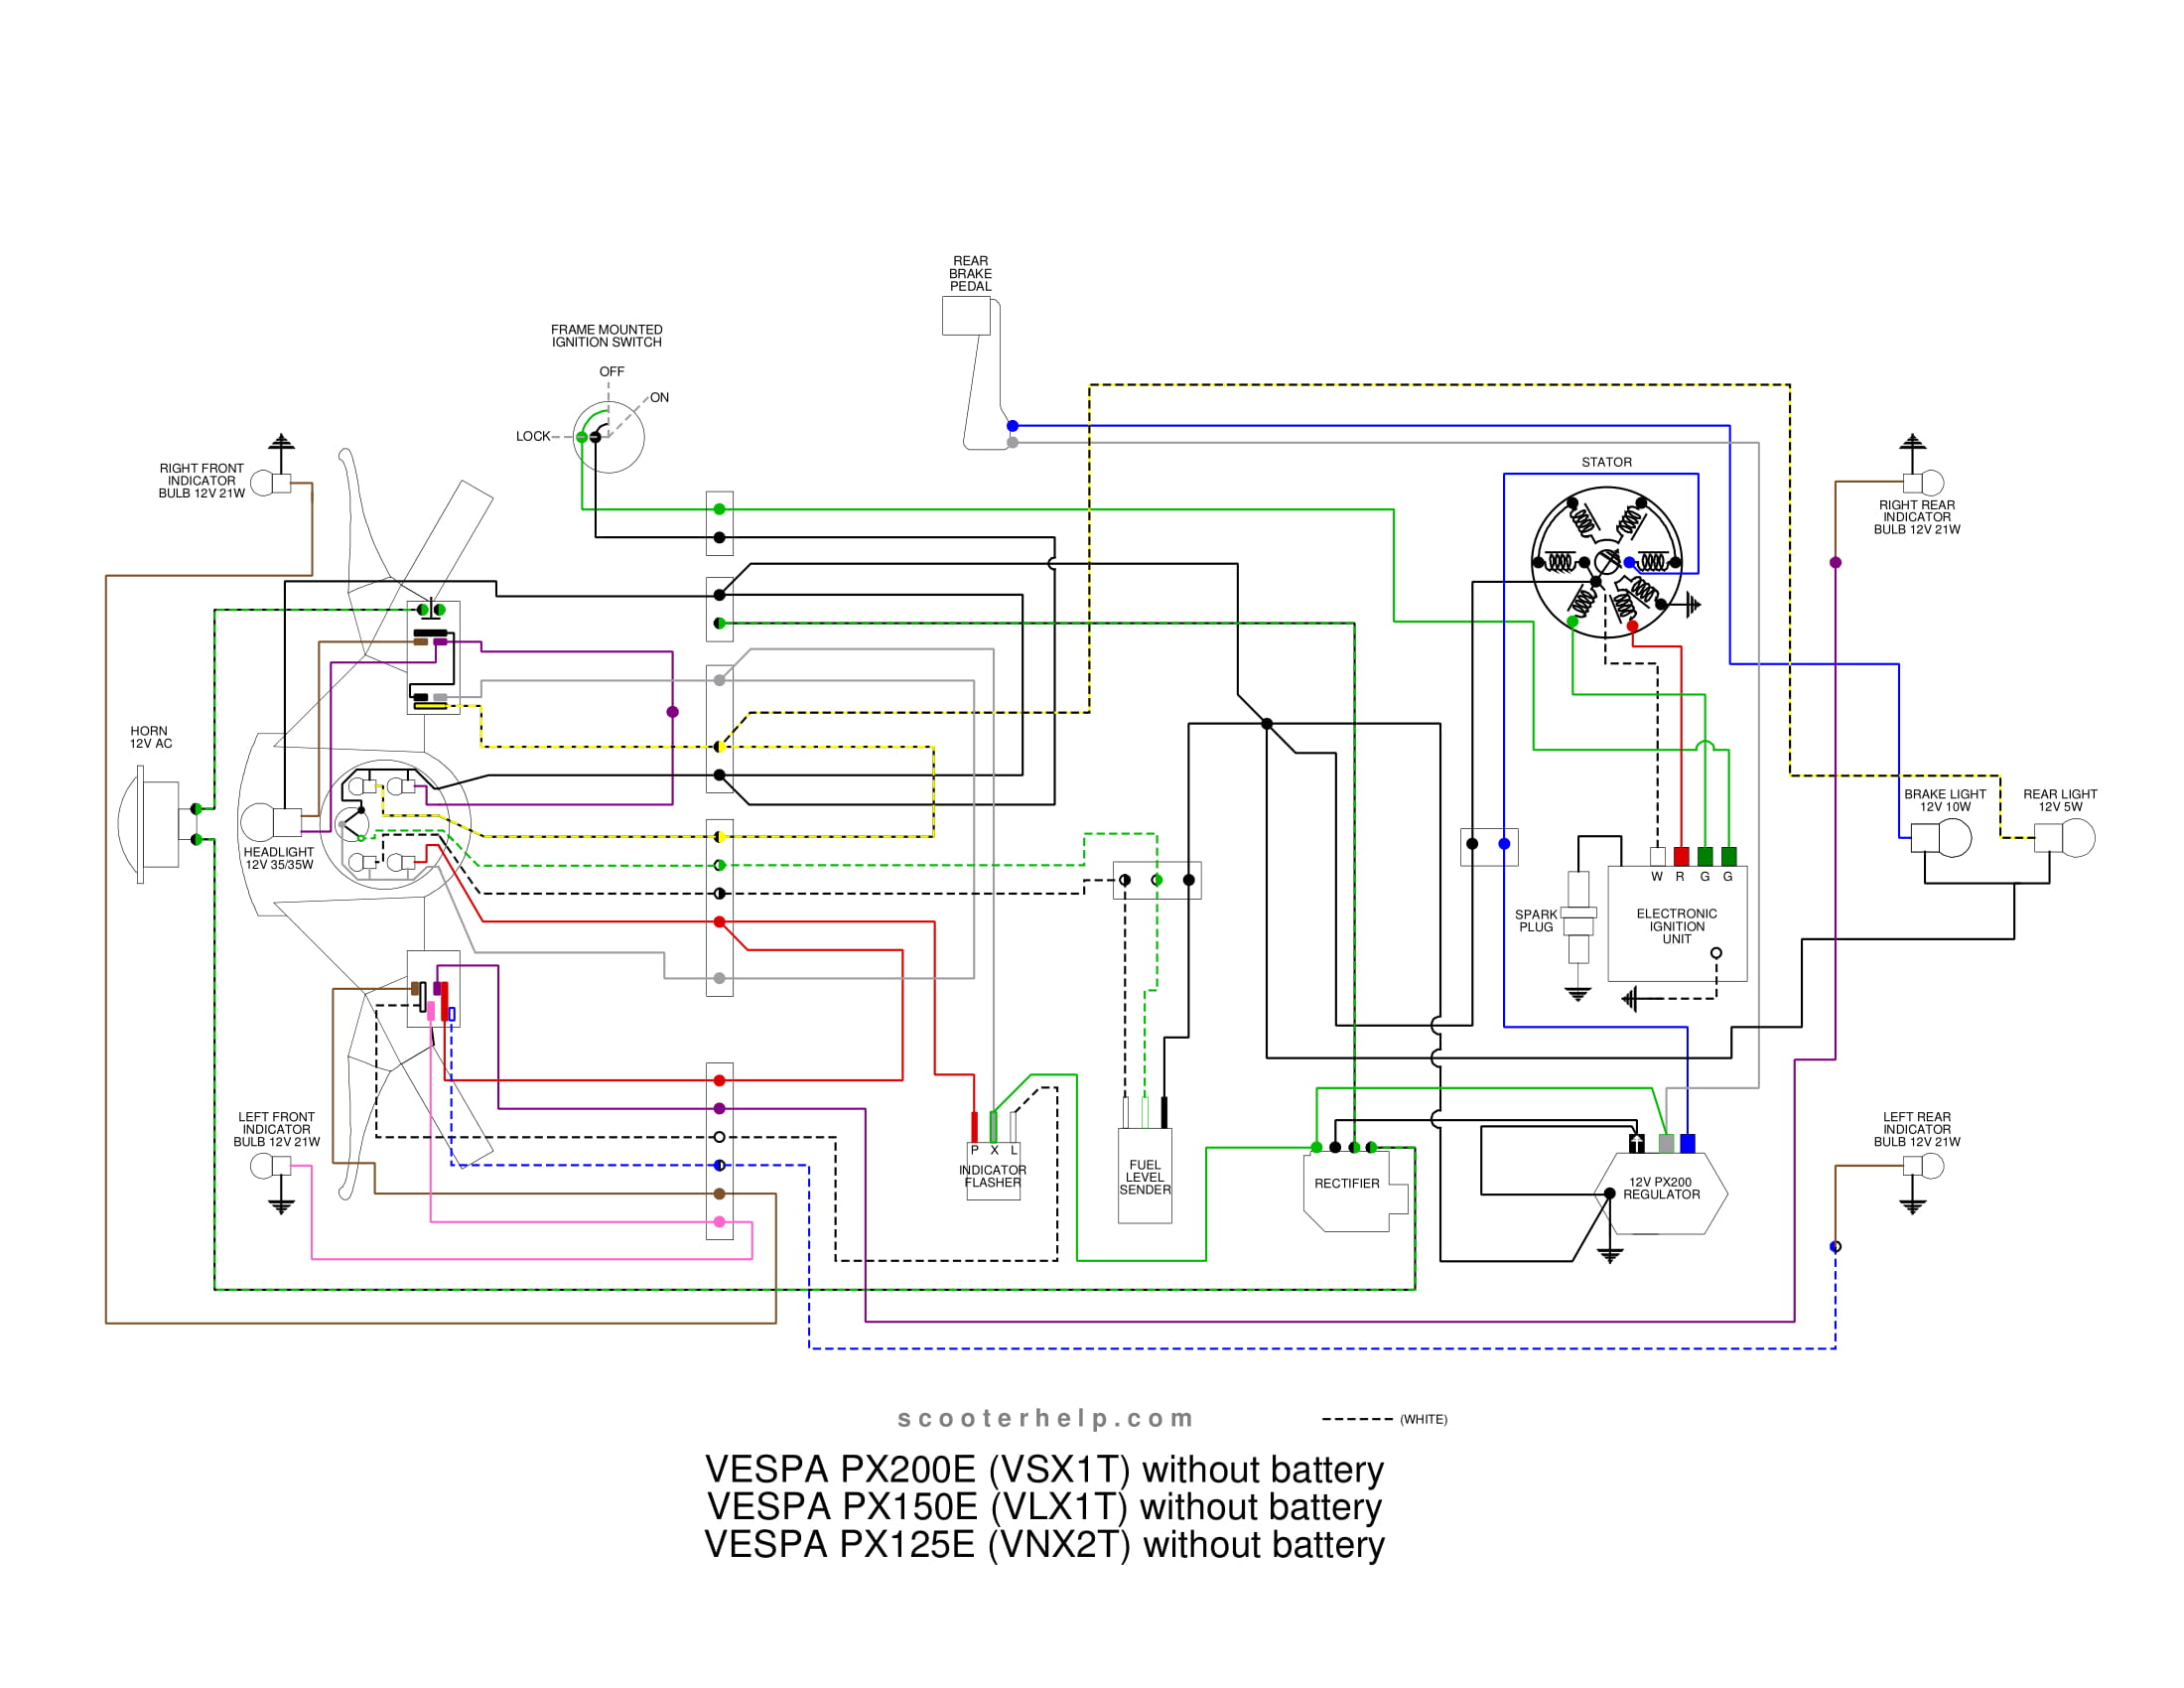 VSX1T.px200e.nobatt scooter help px125e (vnx2t) vespa p125x wiring diagram at fashall.co